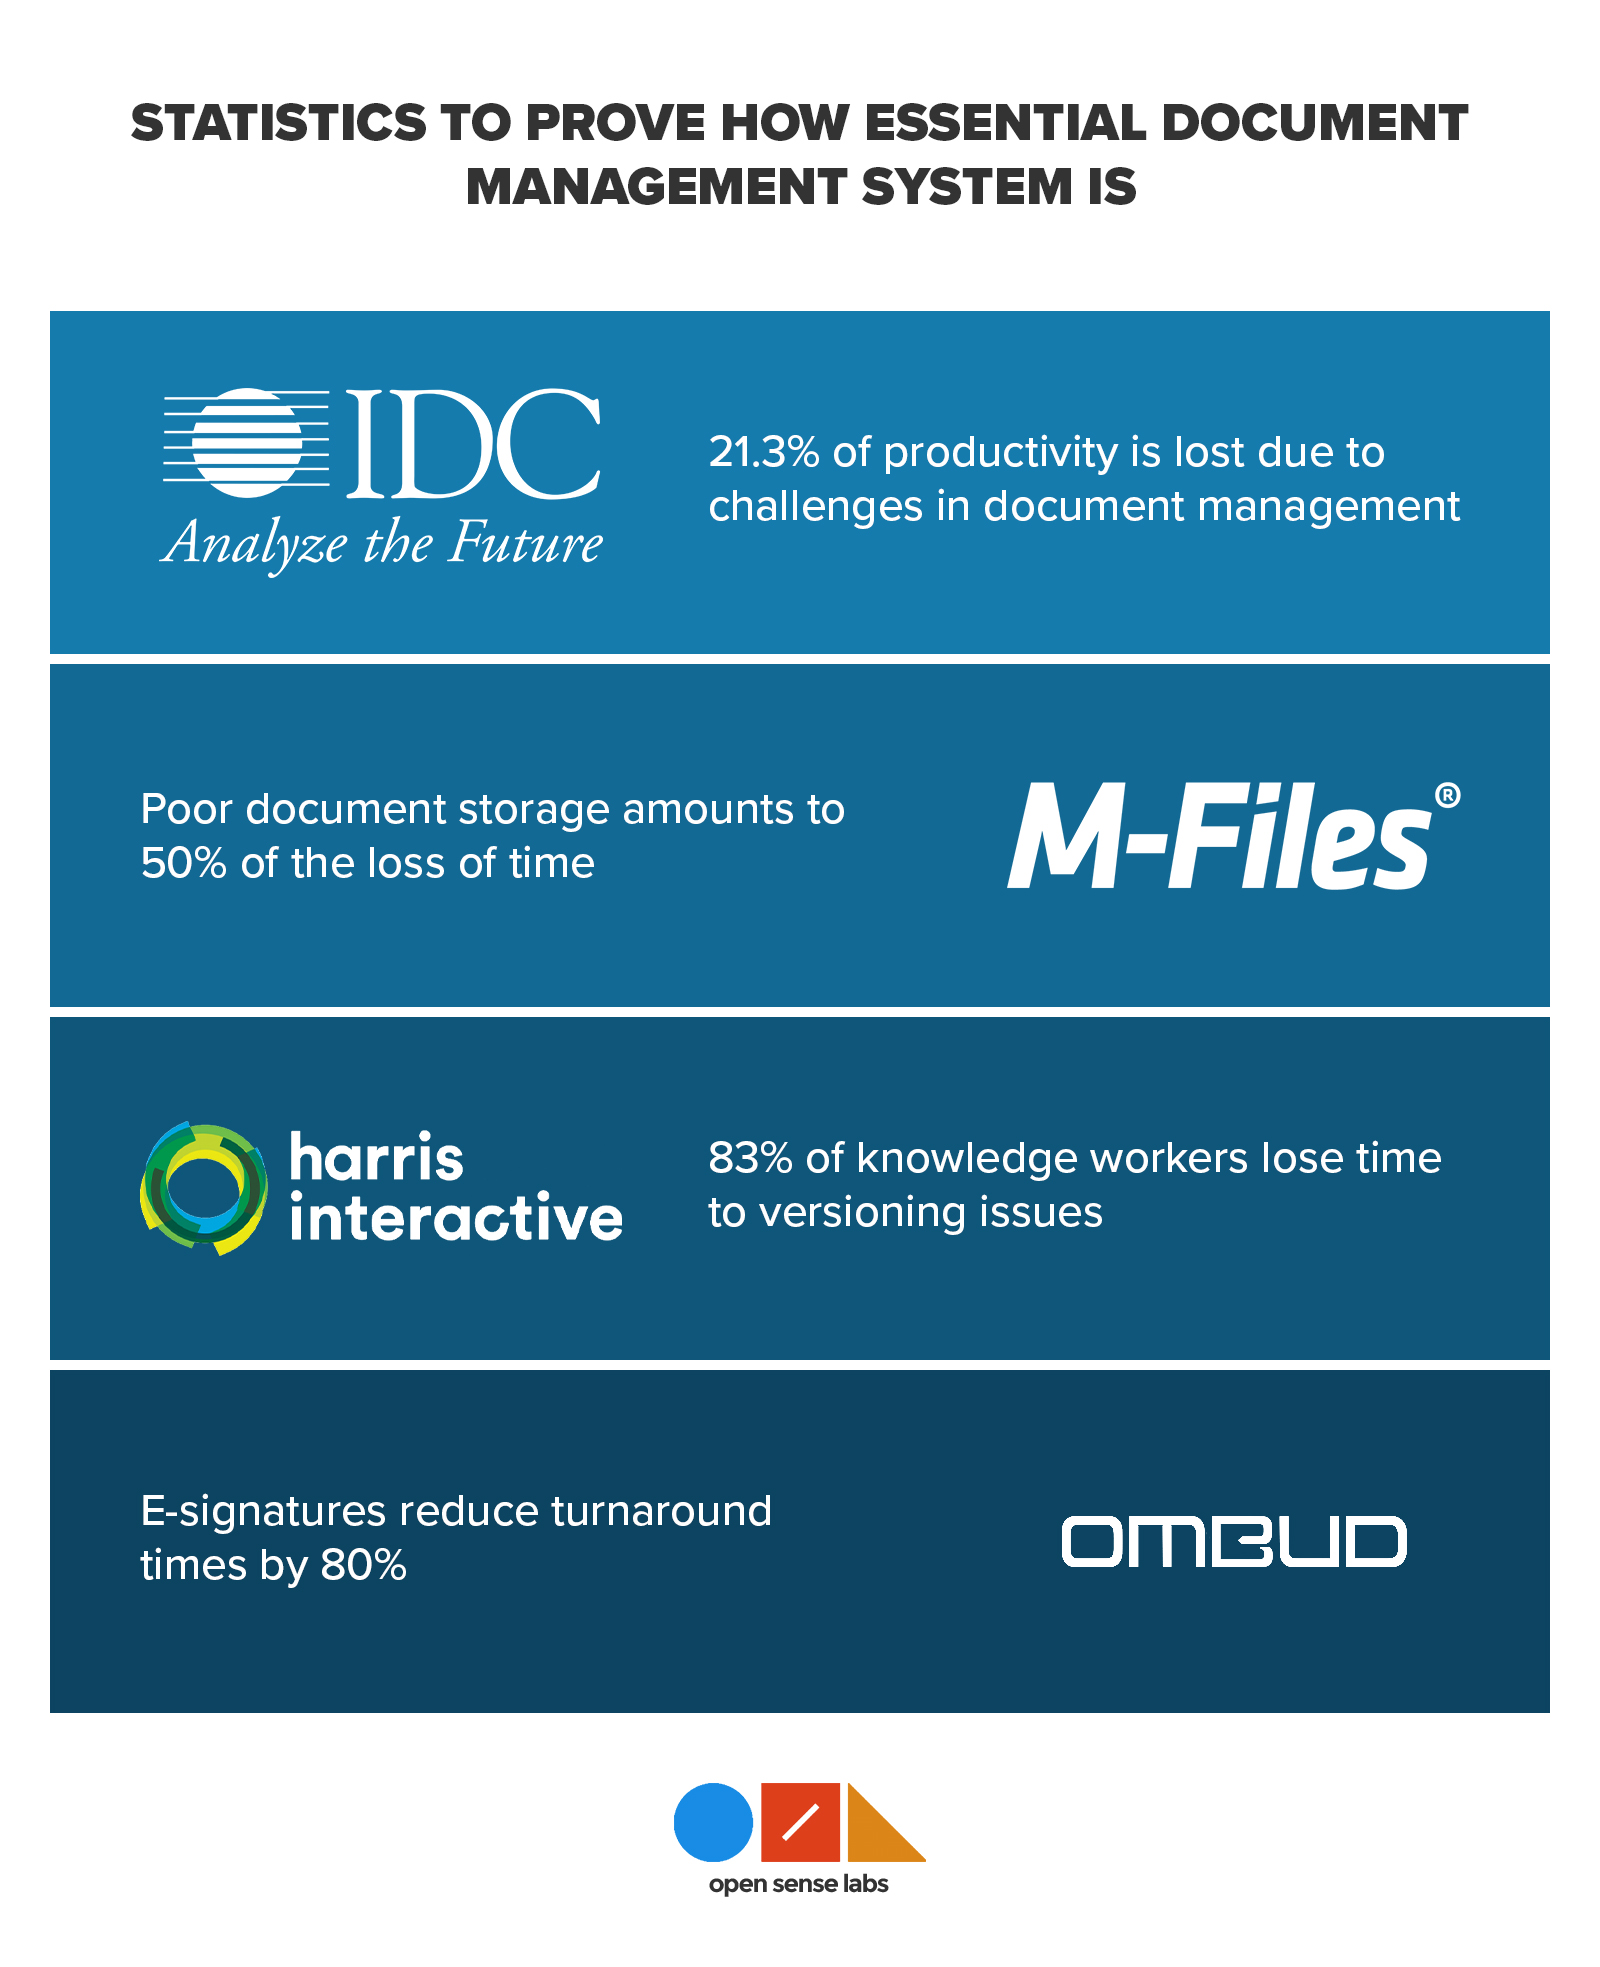 Infographics with statistical information written below the logos of IDC, M-files, Harris interactive, and Ombud